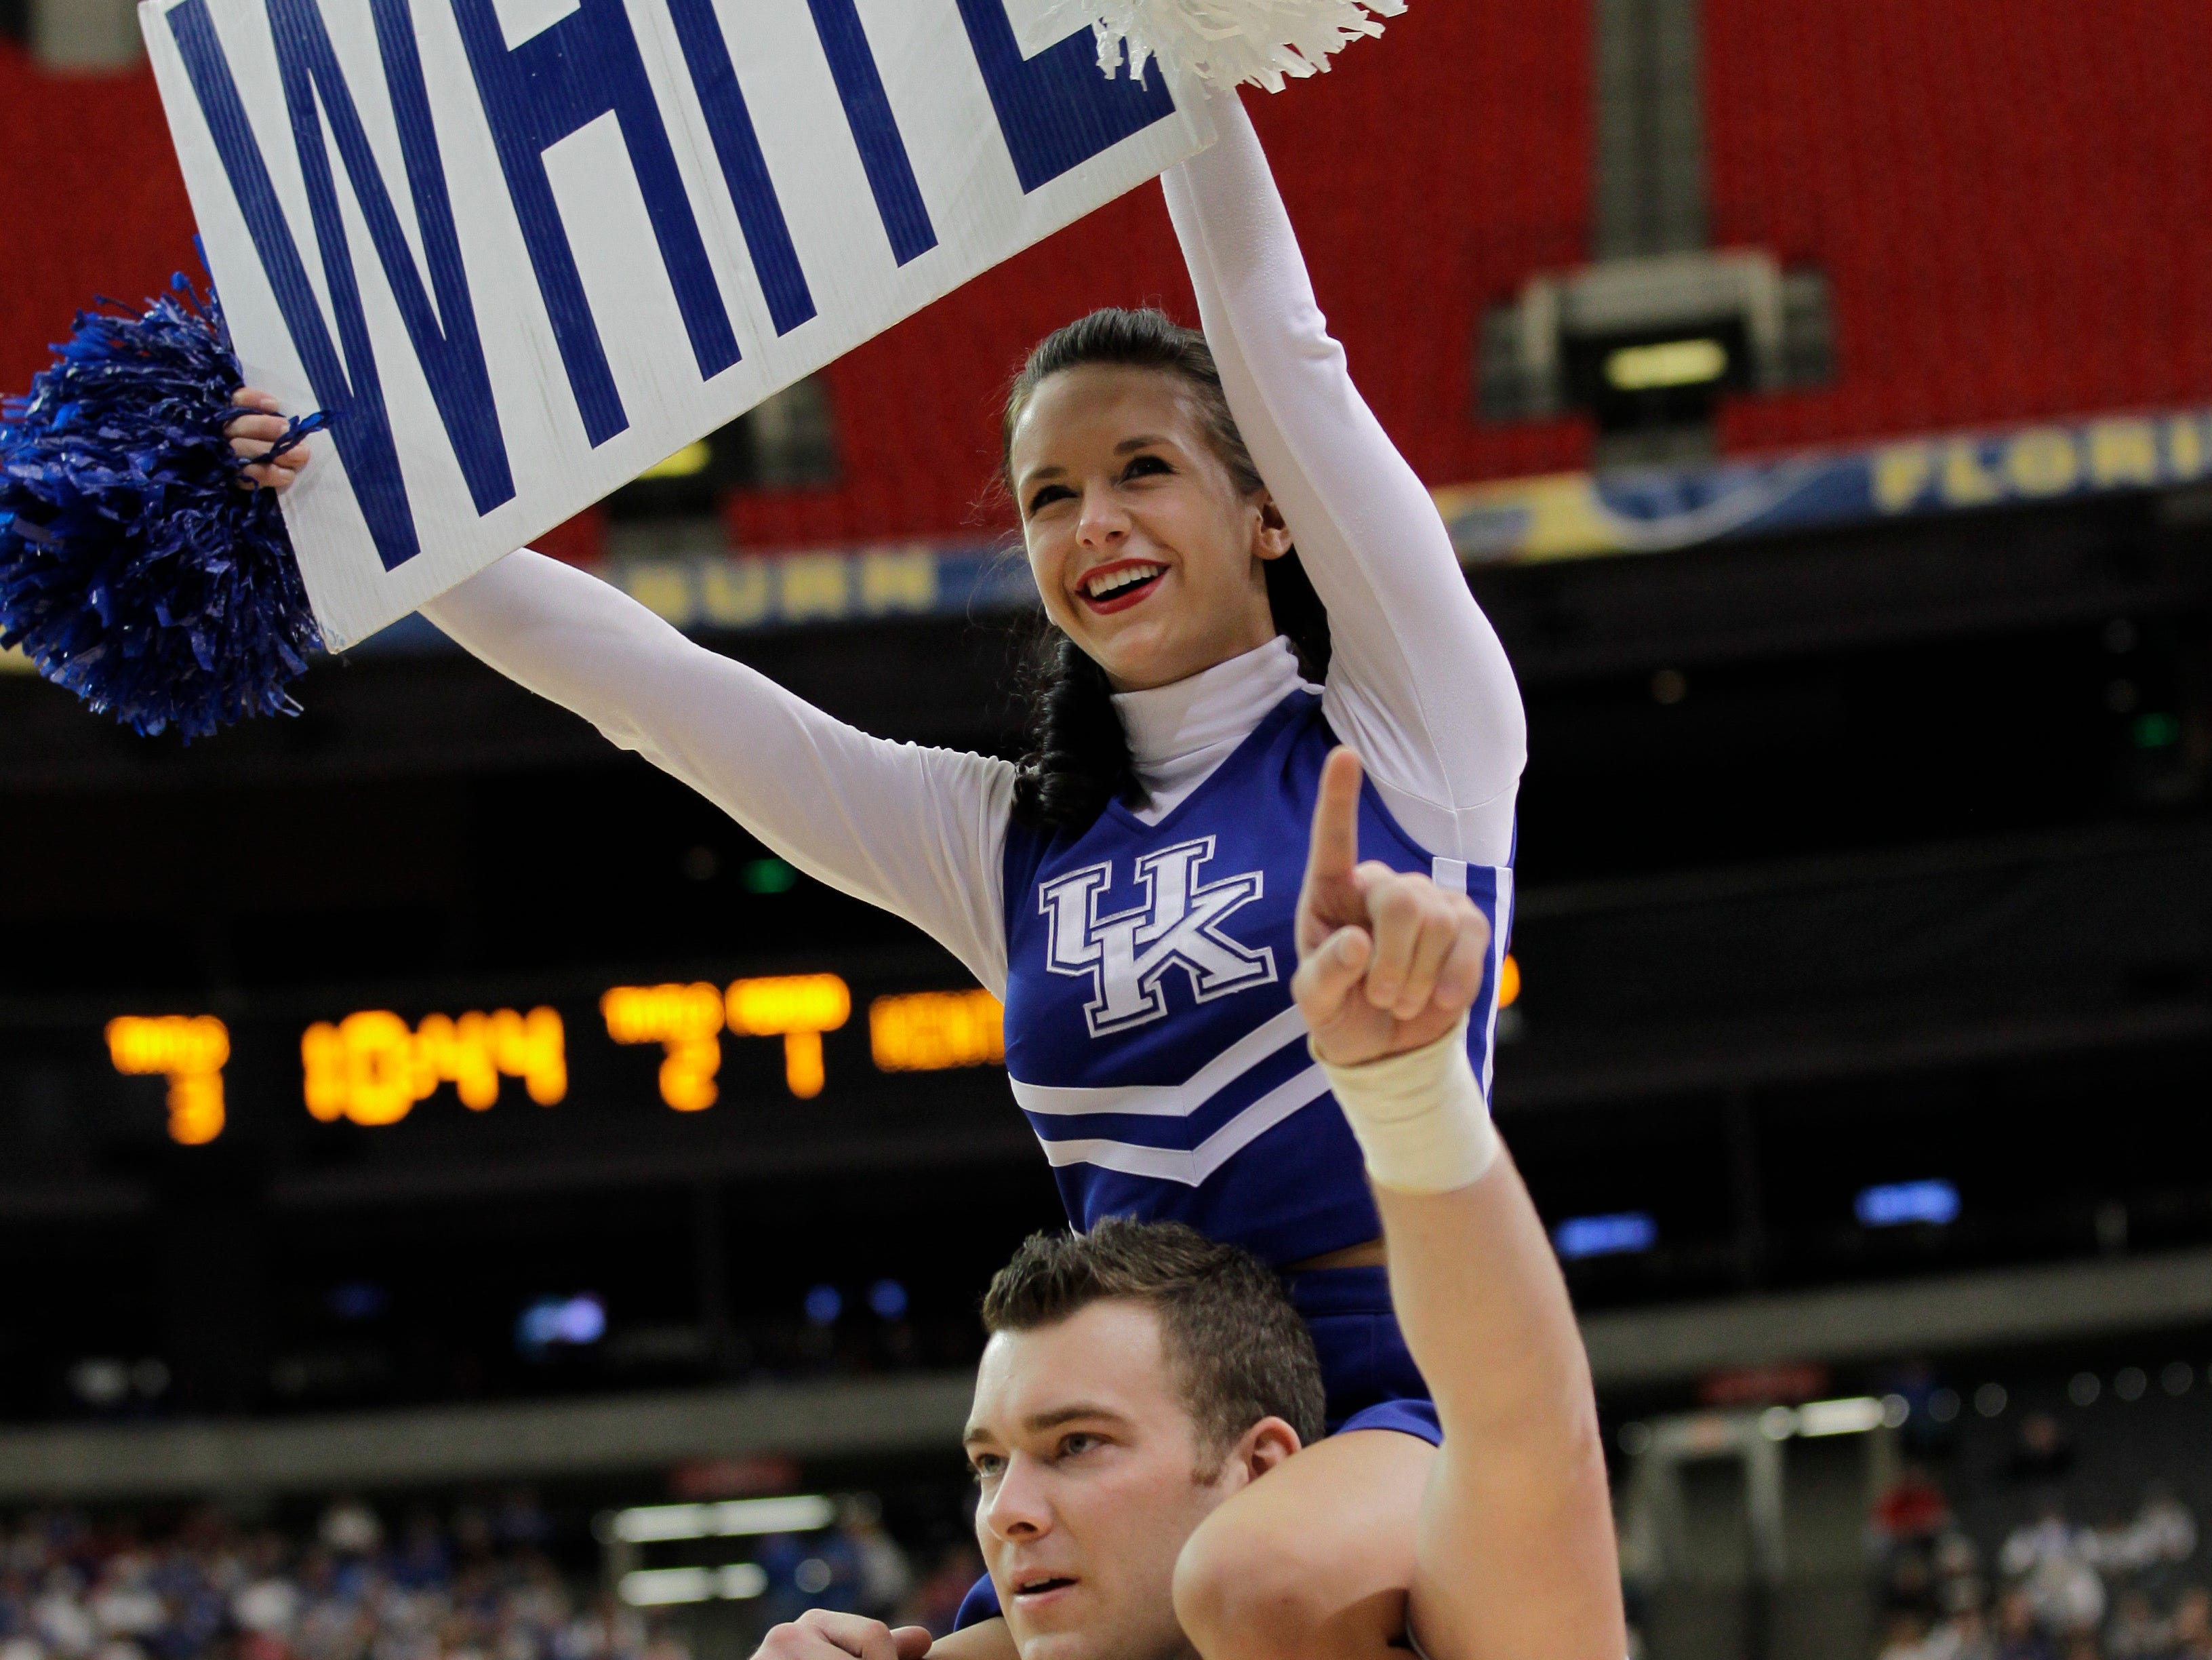 Kentucky cheerleaders performs during the first half of an NCAA college basketball game against Alabama at the Southeastern Conference tournament, Saturday, March 12, 2011, in Atlanta.  (AP Photo/Dave Martin)